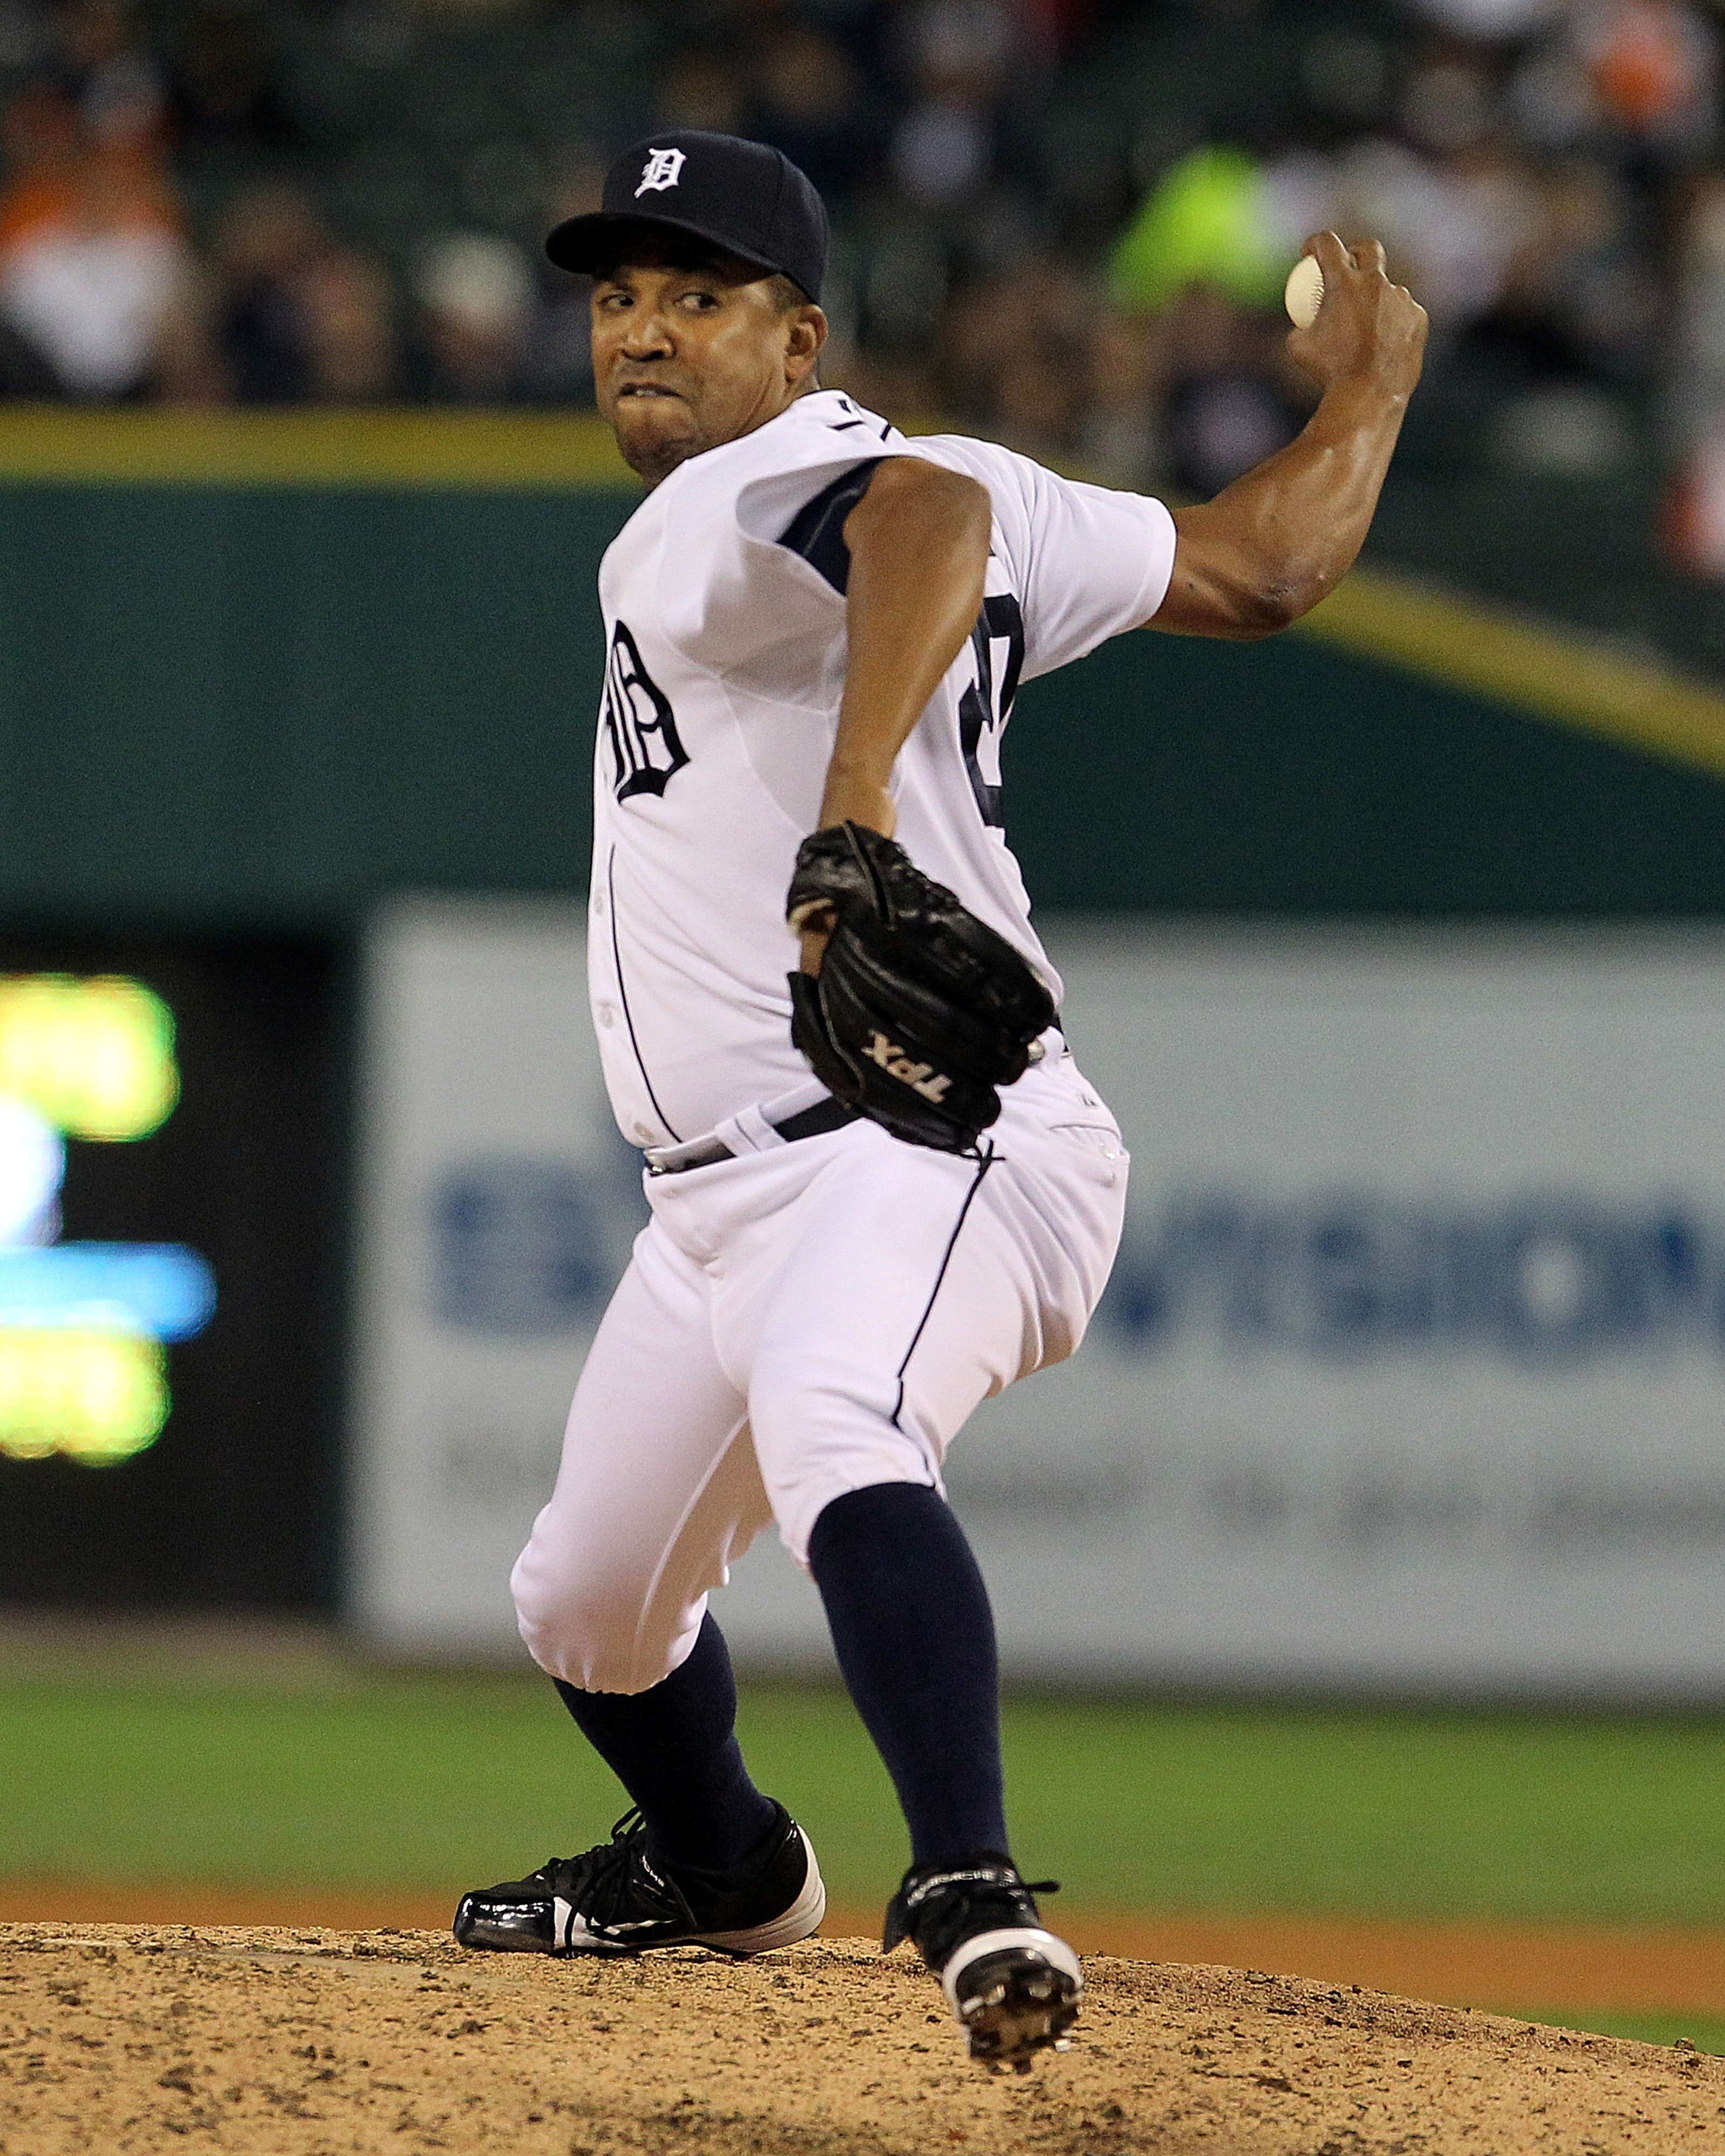 DETROIT, MI - SEPTEMBER 19:  Octavio Dotel #20 of the Detroit Tigers pitches in the seventh inning against the Oakland Athletics at Comerica Park on September 19, 2012 in Detroit, Michigan.  The Tigers won 6-2.  (Photo by Dave Reginek/Getty Images)